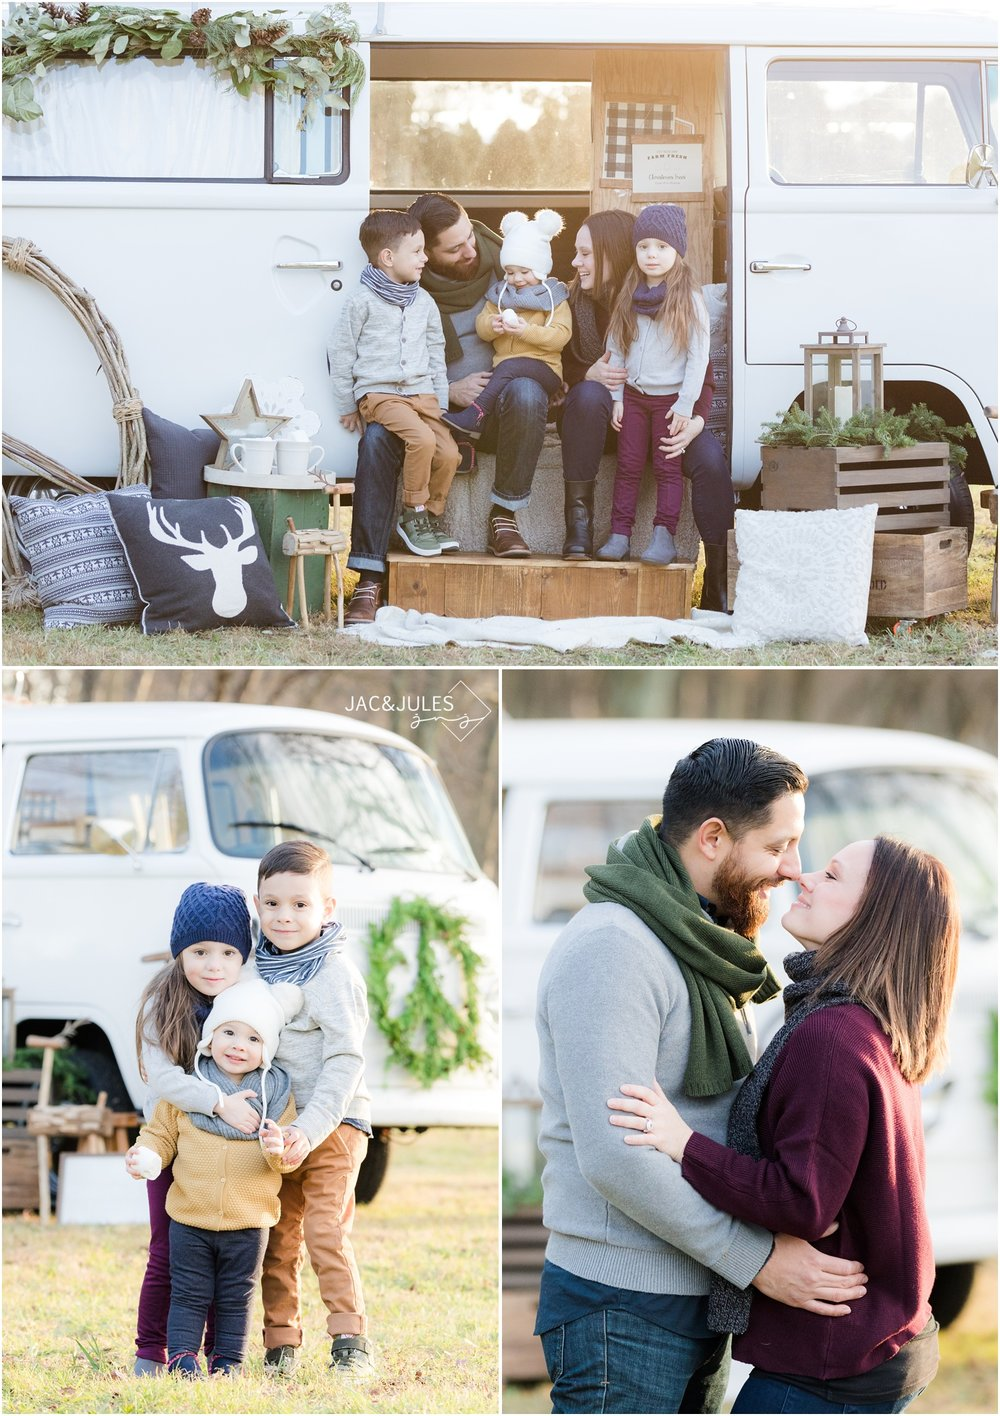 Stylish family holiday photos with VW Booth Bus at Patterson Greenhouse Christmas tree farm in Freehold, NJ.